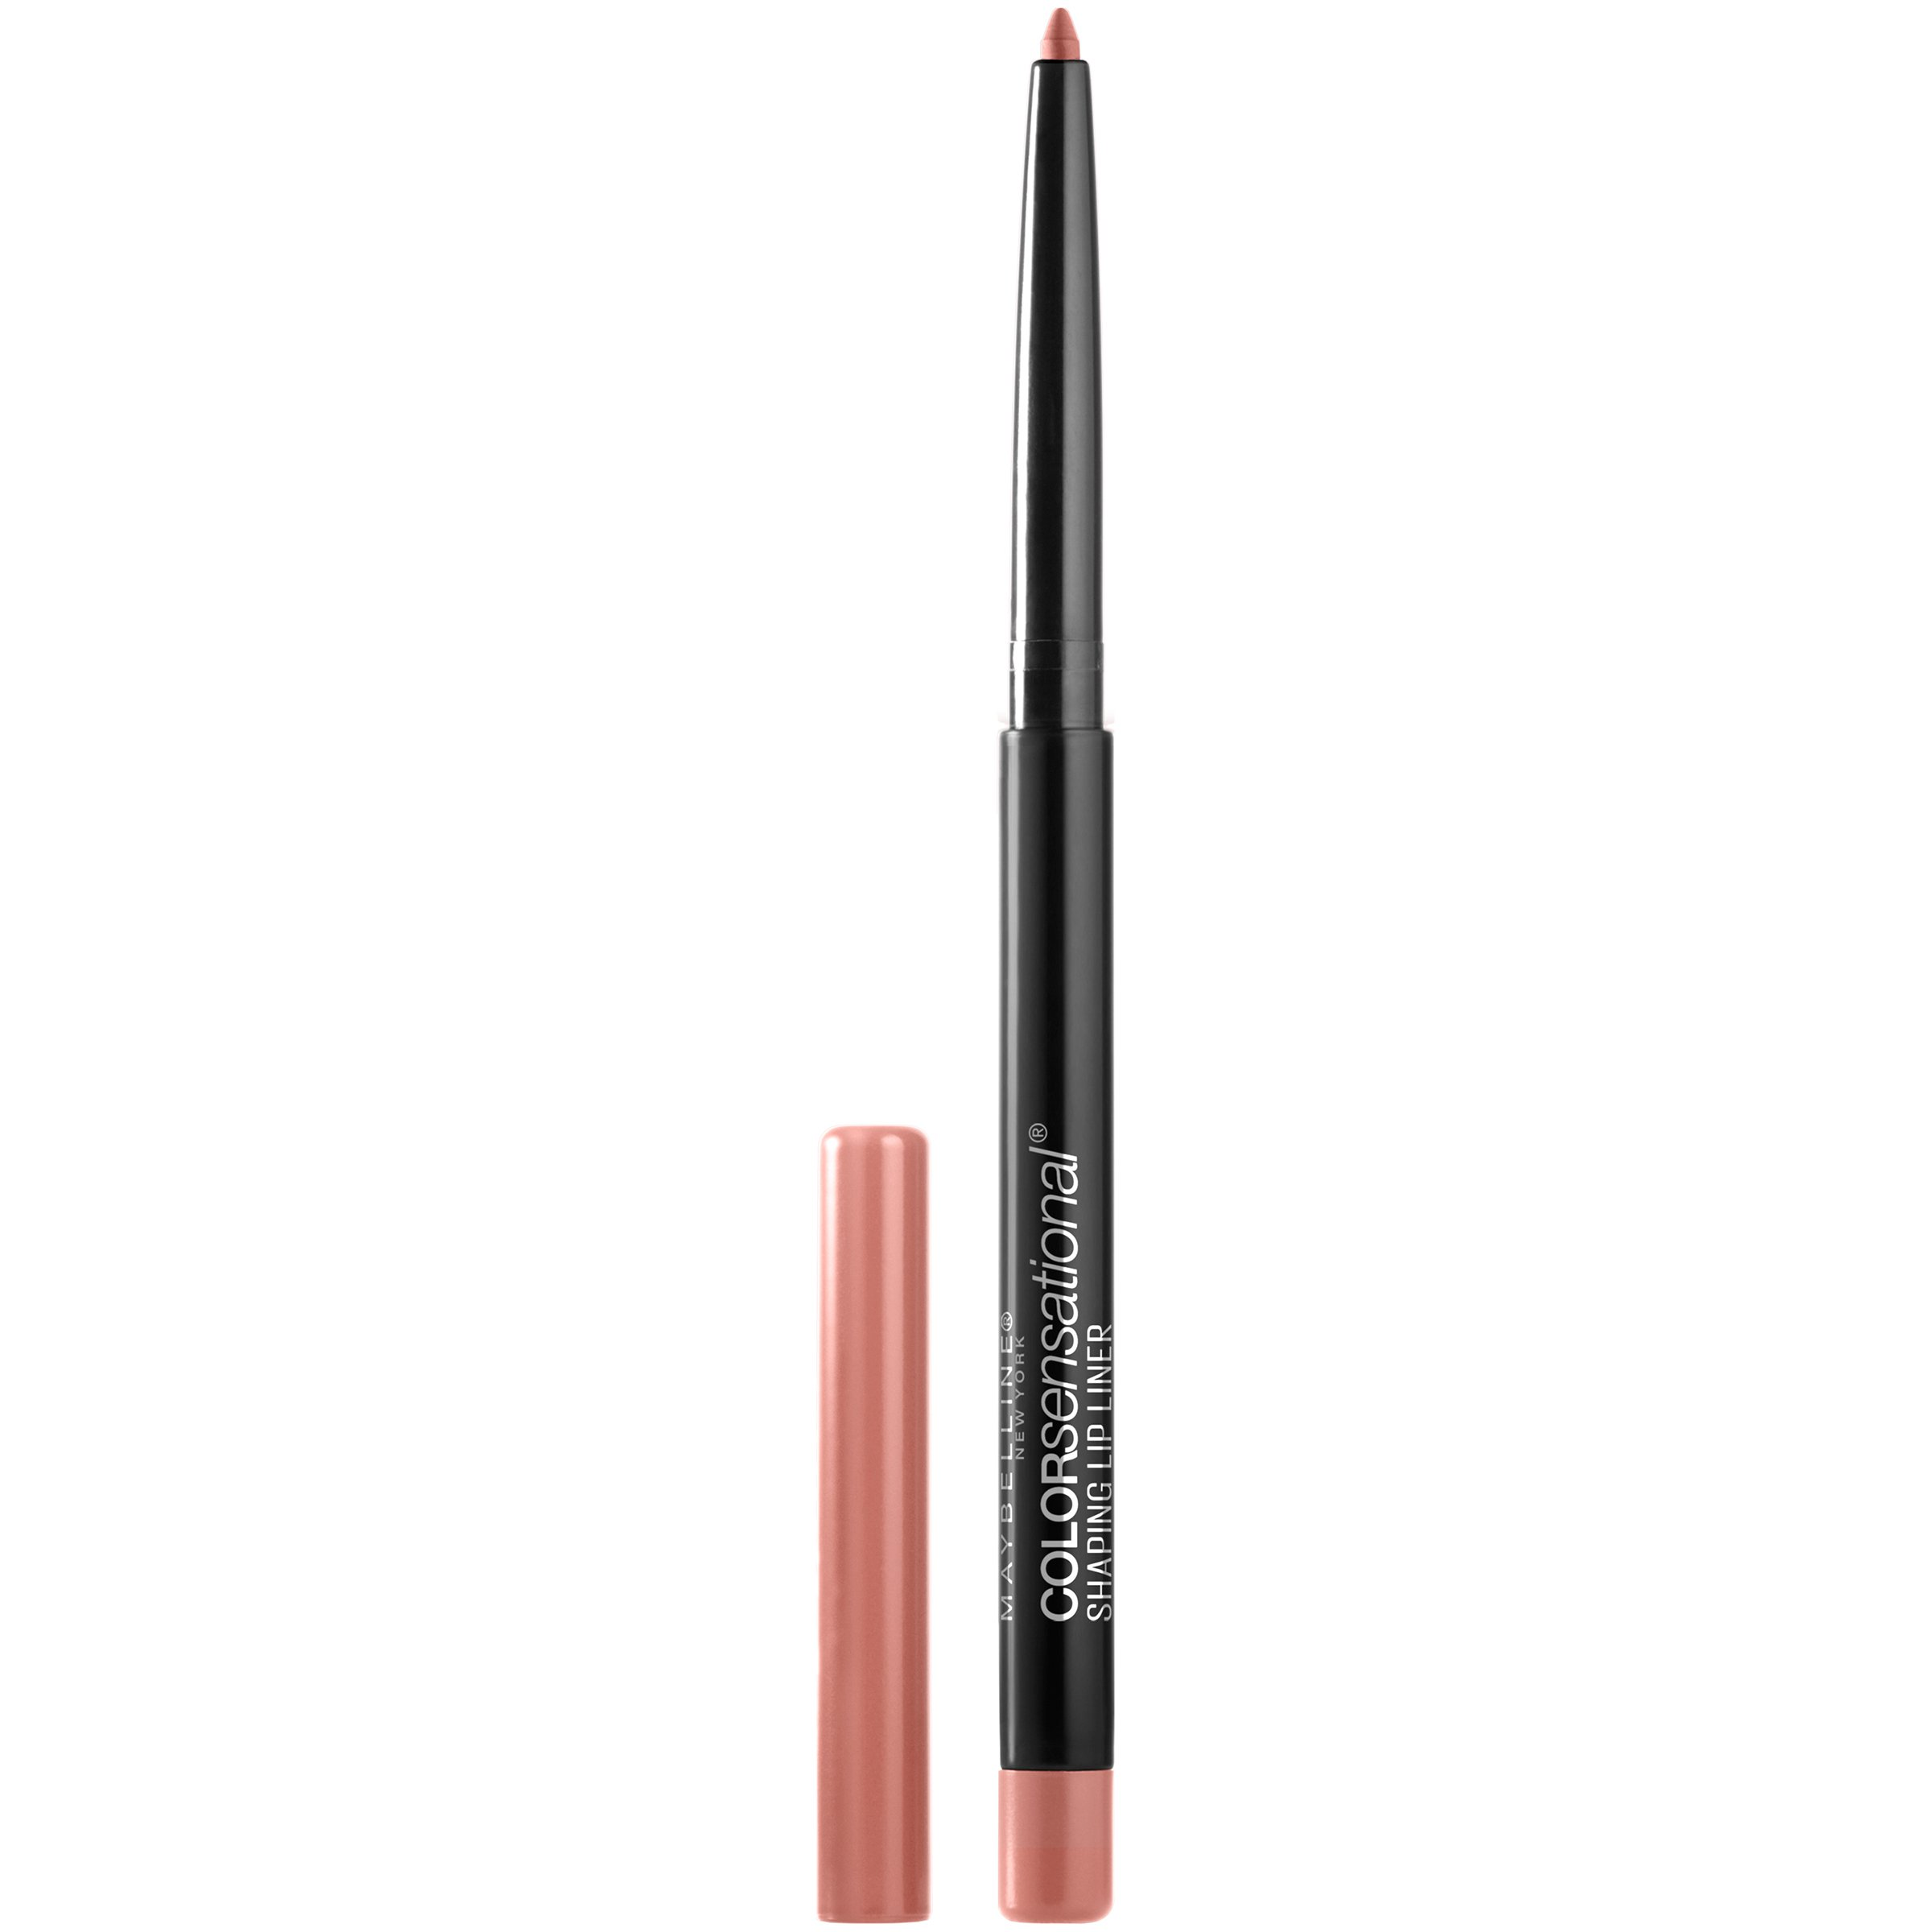 Maybelline New York Color Sensational Shaping Lip Liner Totally Toffee Nude Lip Liner 0.01 oz